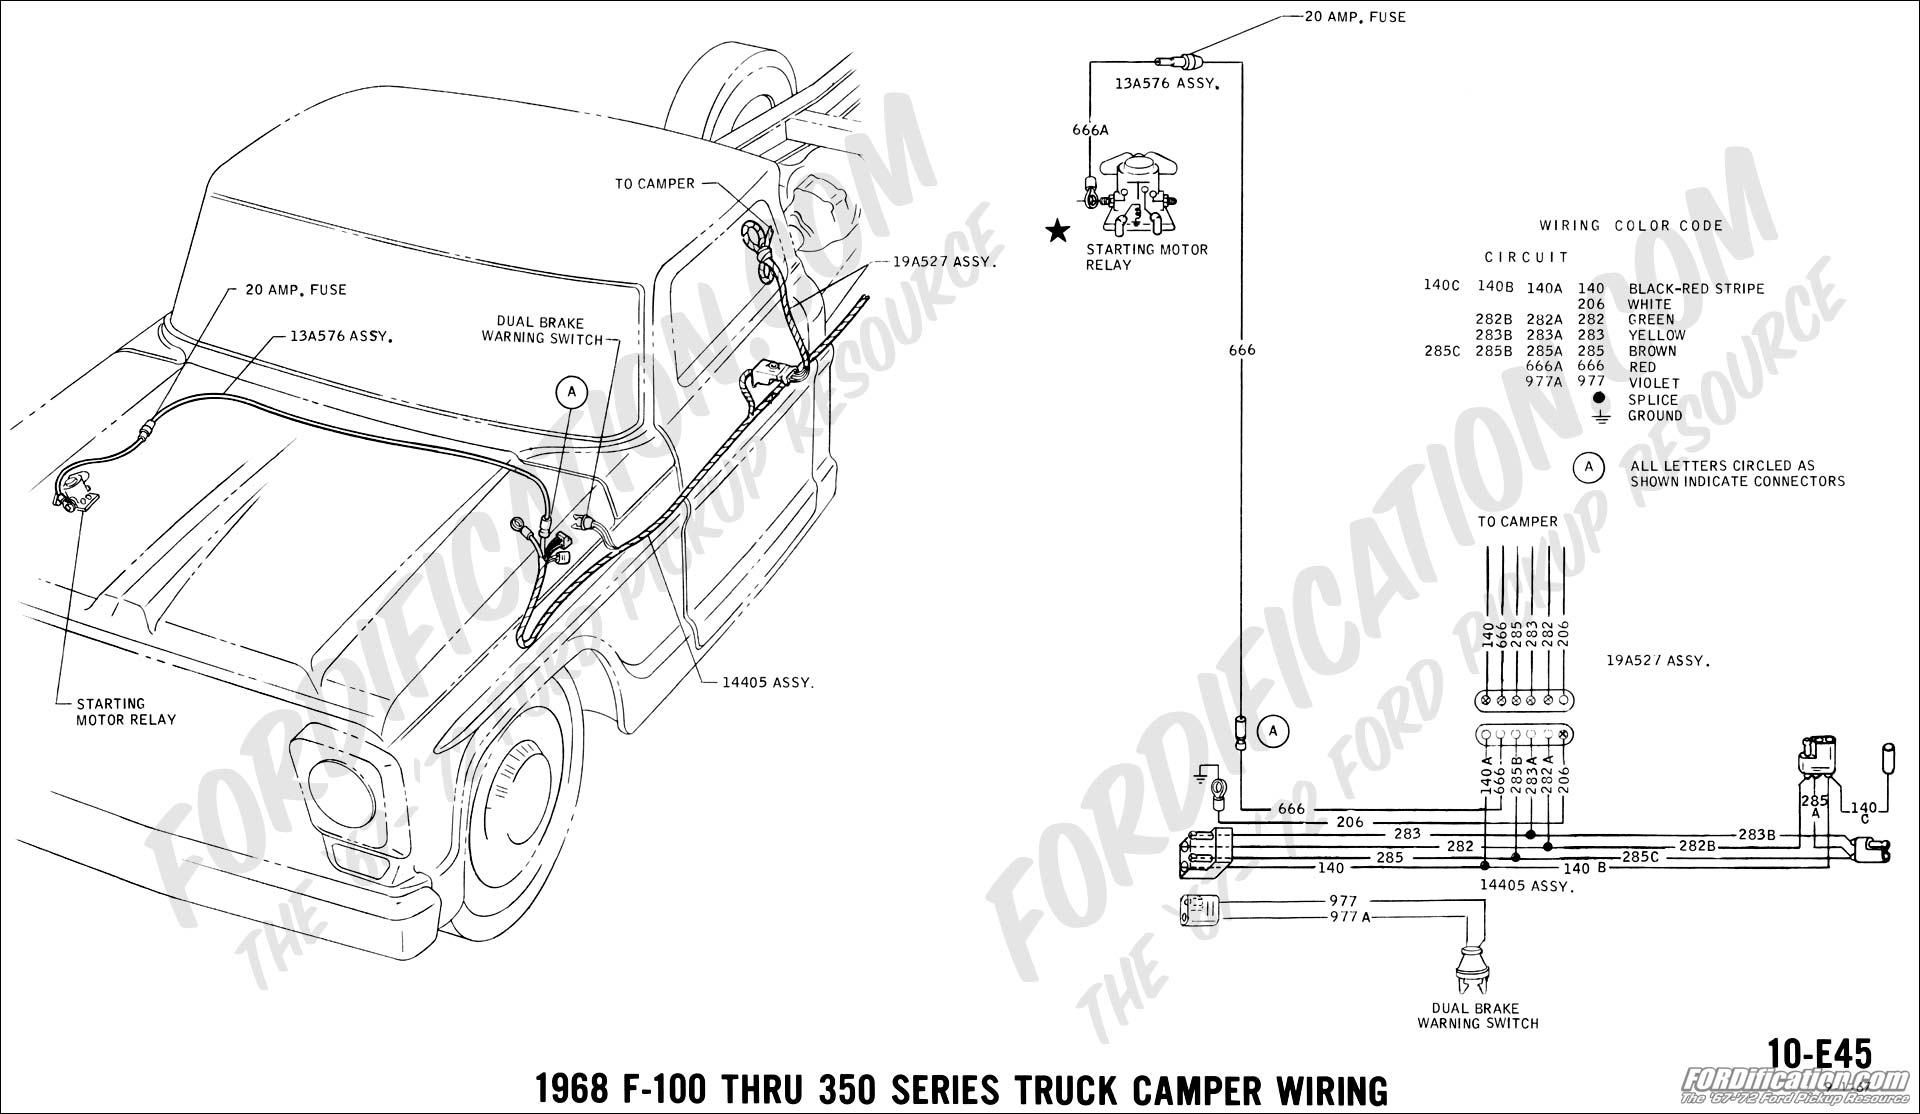 68 47 ford truck technical drawings and schematics section h wiring truck camper wire harness at bakdesigns.co